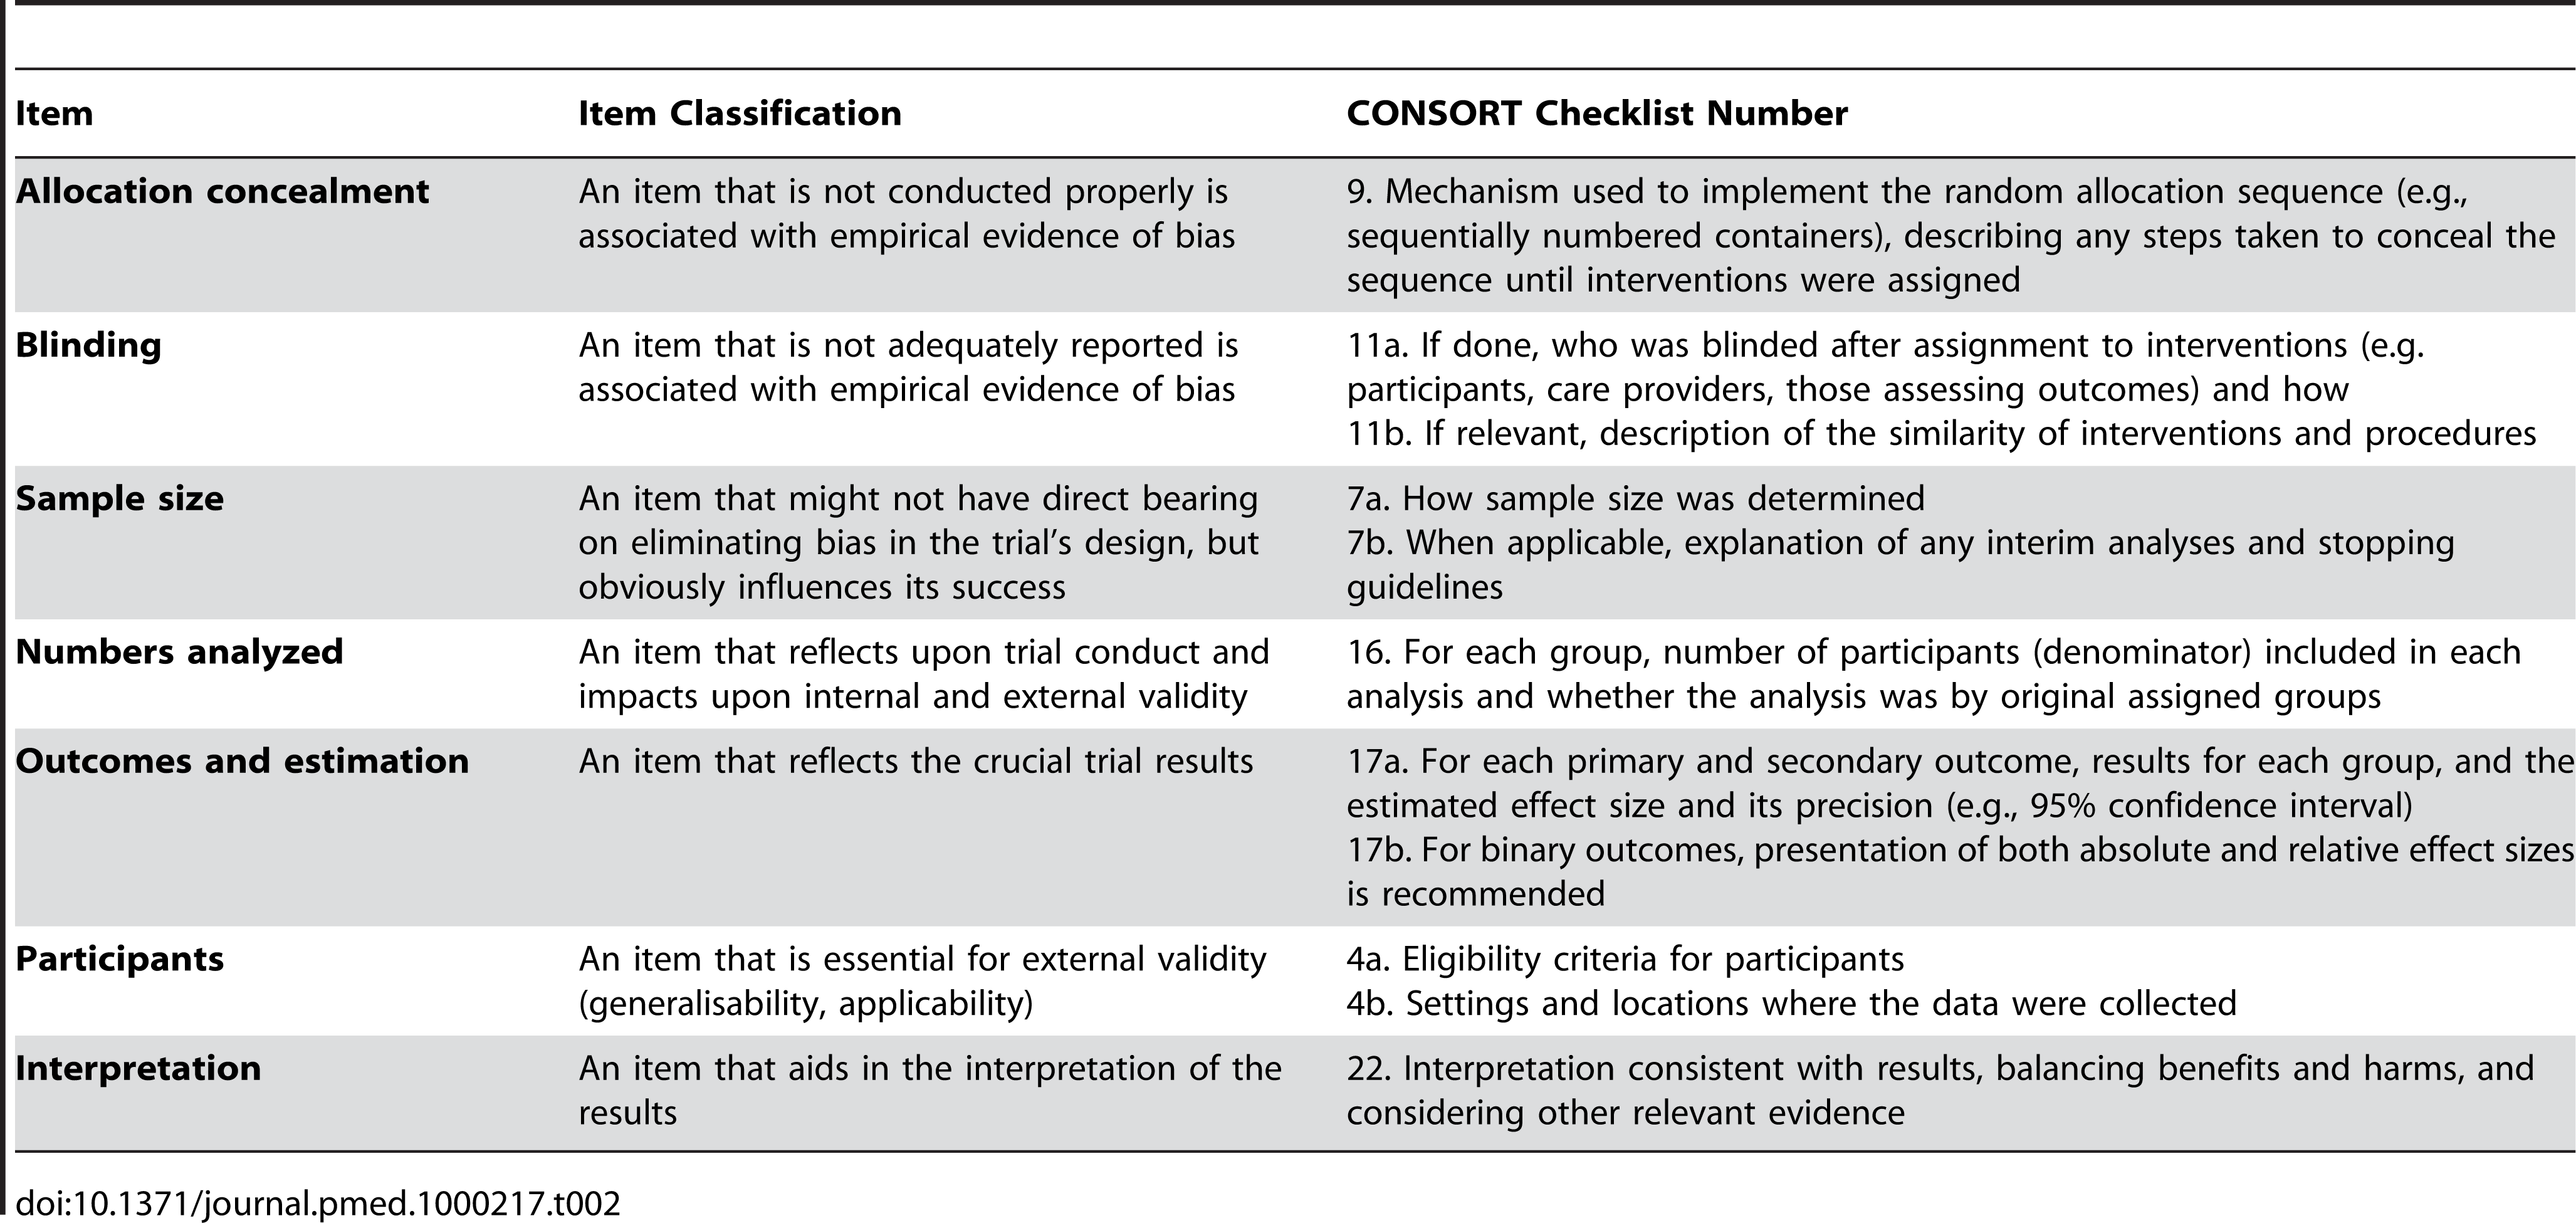 Classification of categories of items for consideration for inclusion in a reporting guideline checklist, illustrated by some items from the CONSORT checklist.